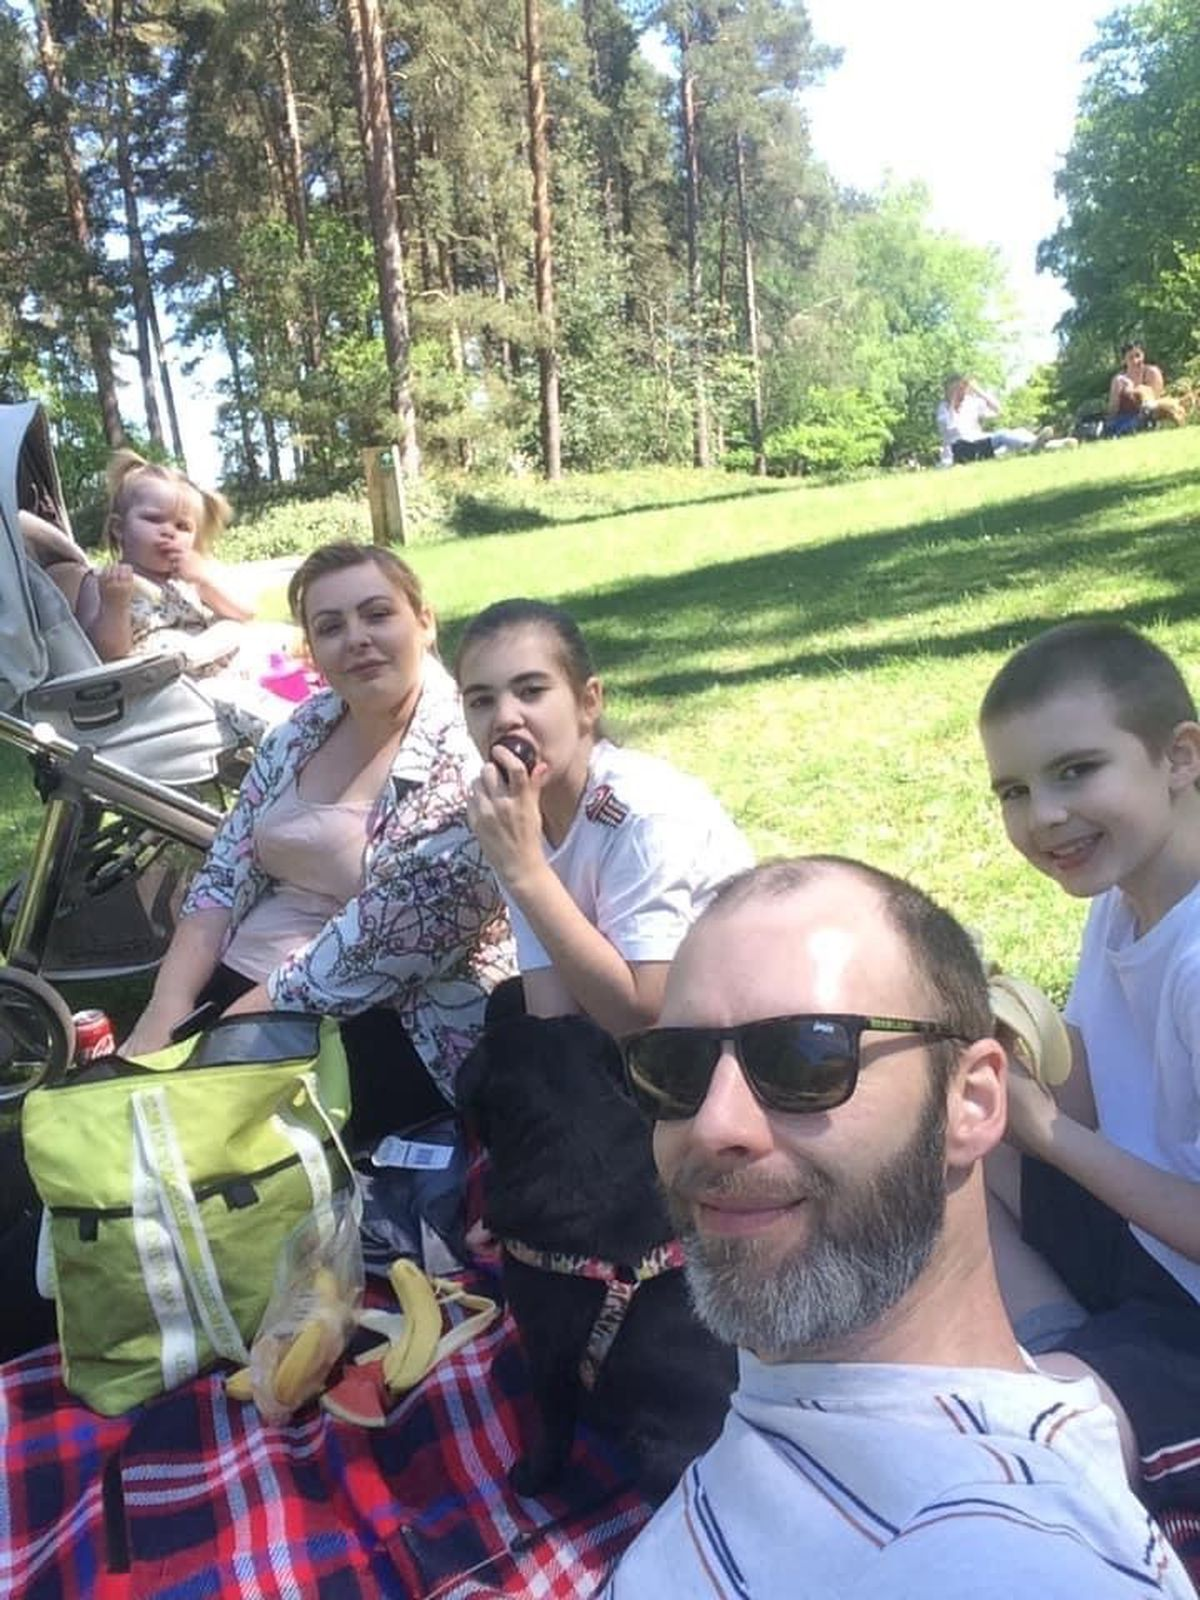 Tipton family Kirsty, David, Myiah, 10, Harrison, 9 and Sydney, 18 months, enjoying a picnic at Cannock Chase with dog Purdy